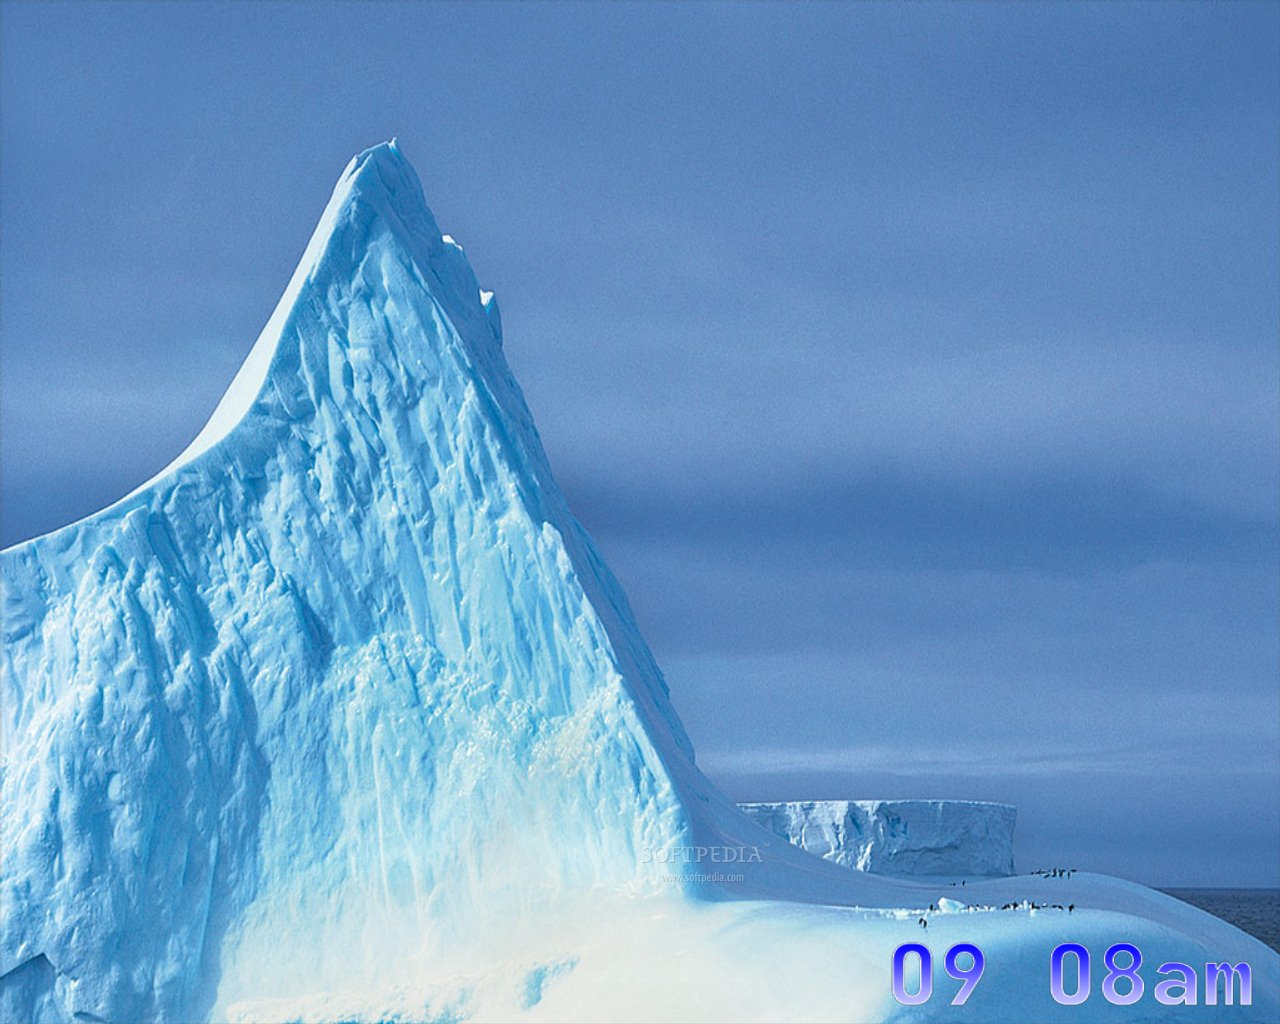 dArt North Pole Screensaver - This is one of the images displayed by